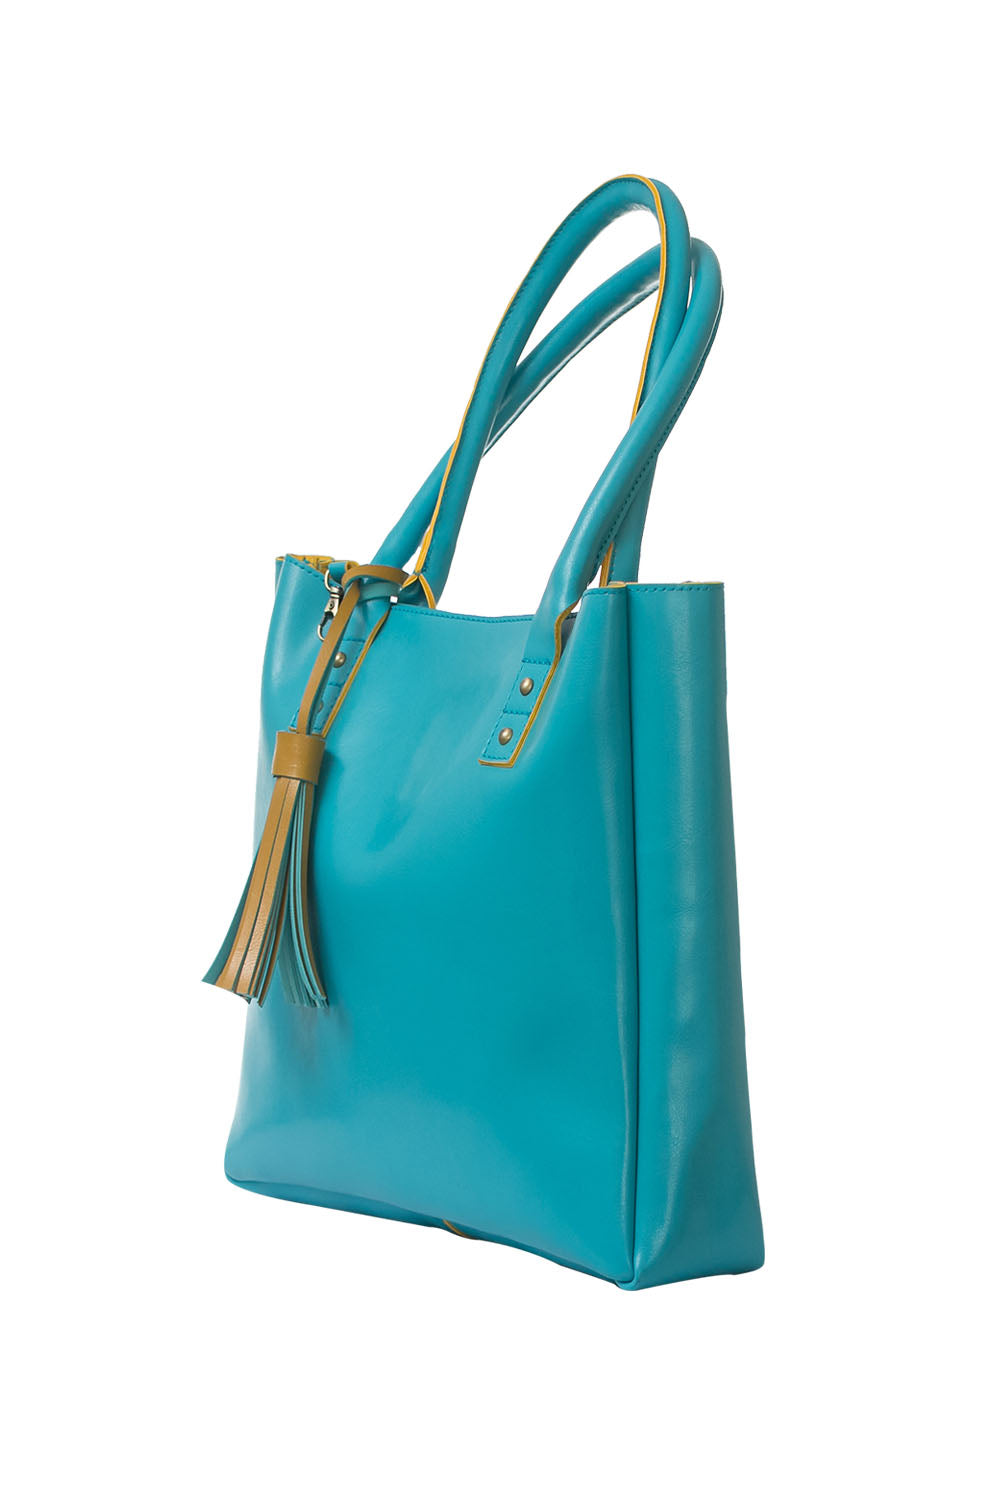 Blue Vibrant Tote Bag